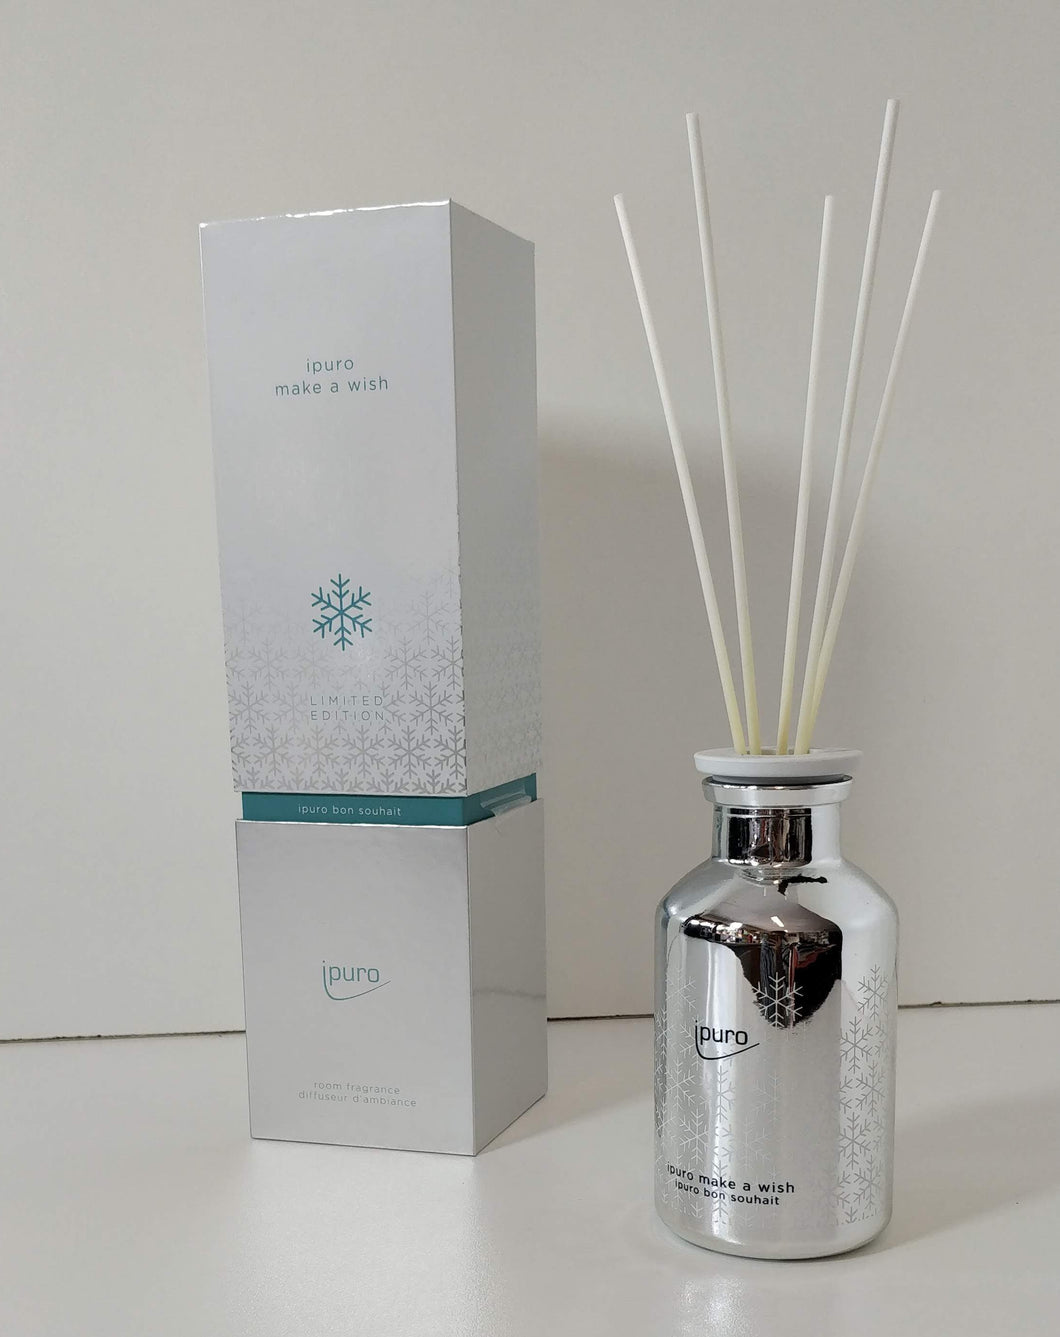 Ipuro Make A Wish luxe huisparfum 240ml